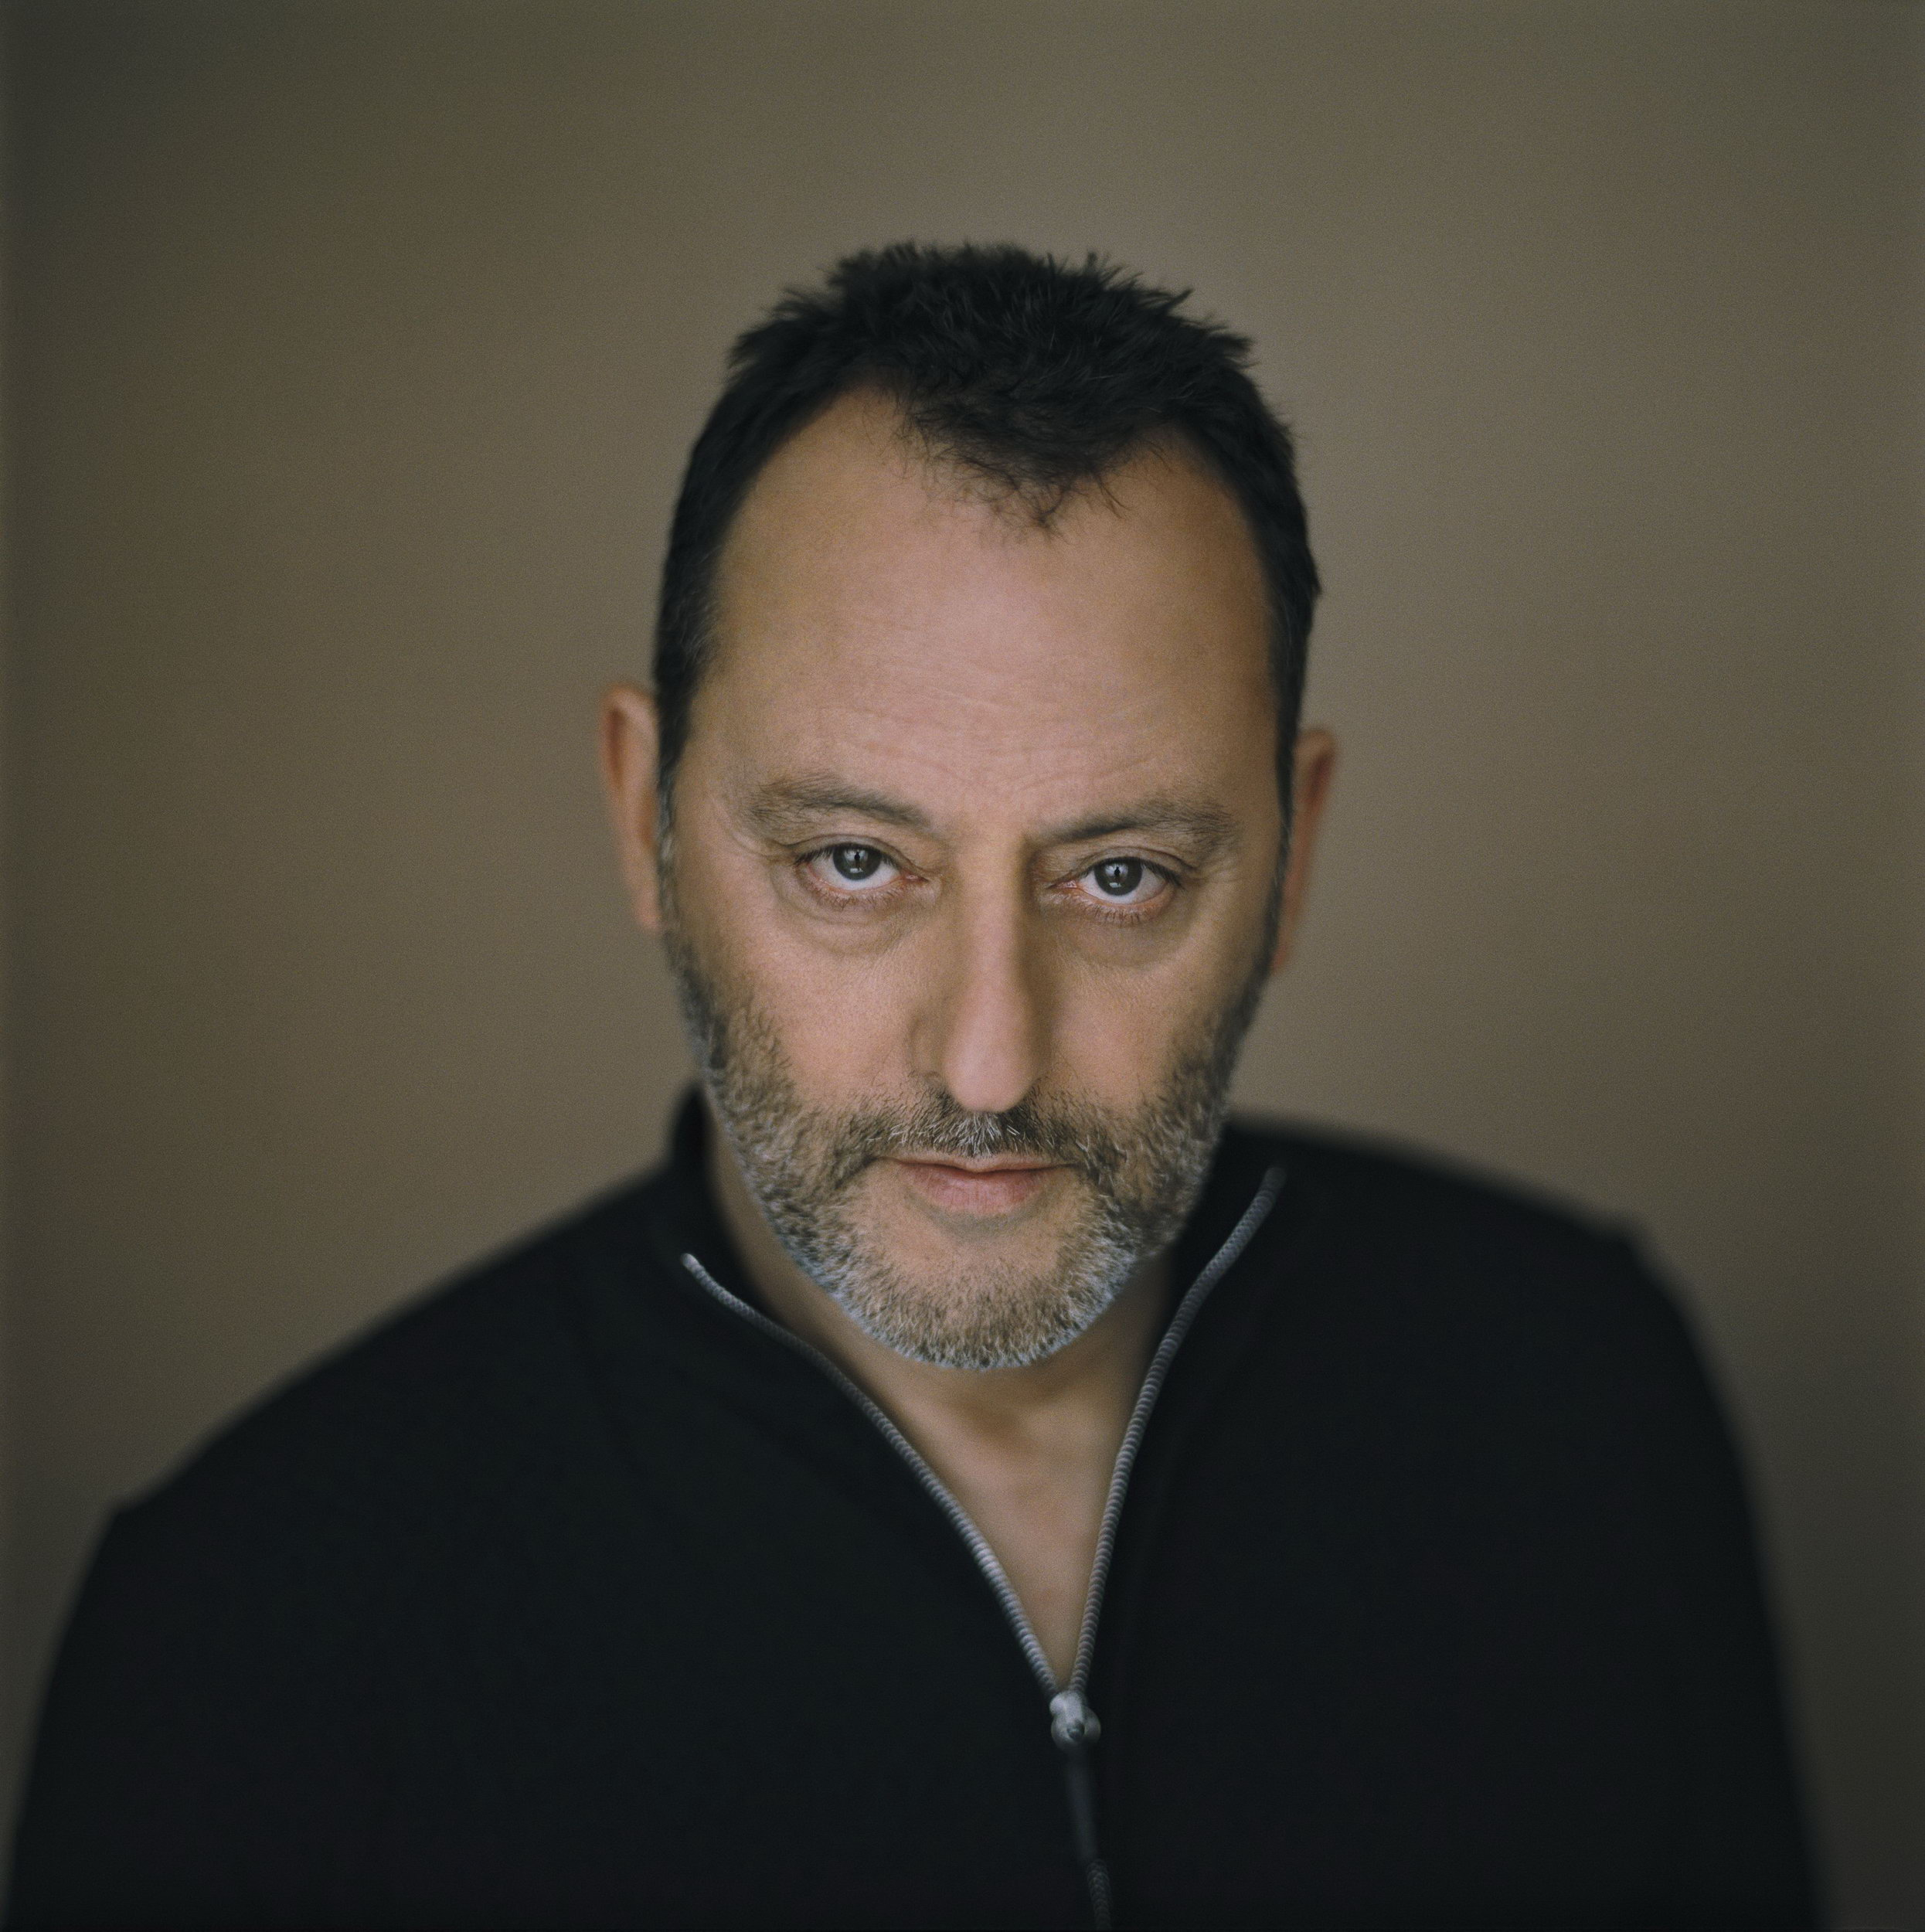 Jean Reno Backgrounds on Wallpapers Vista